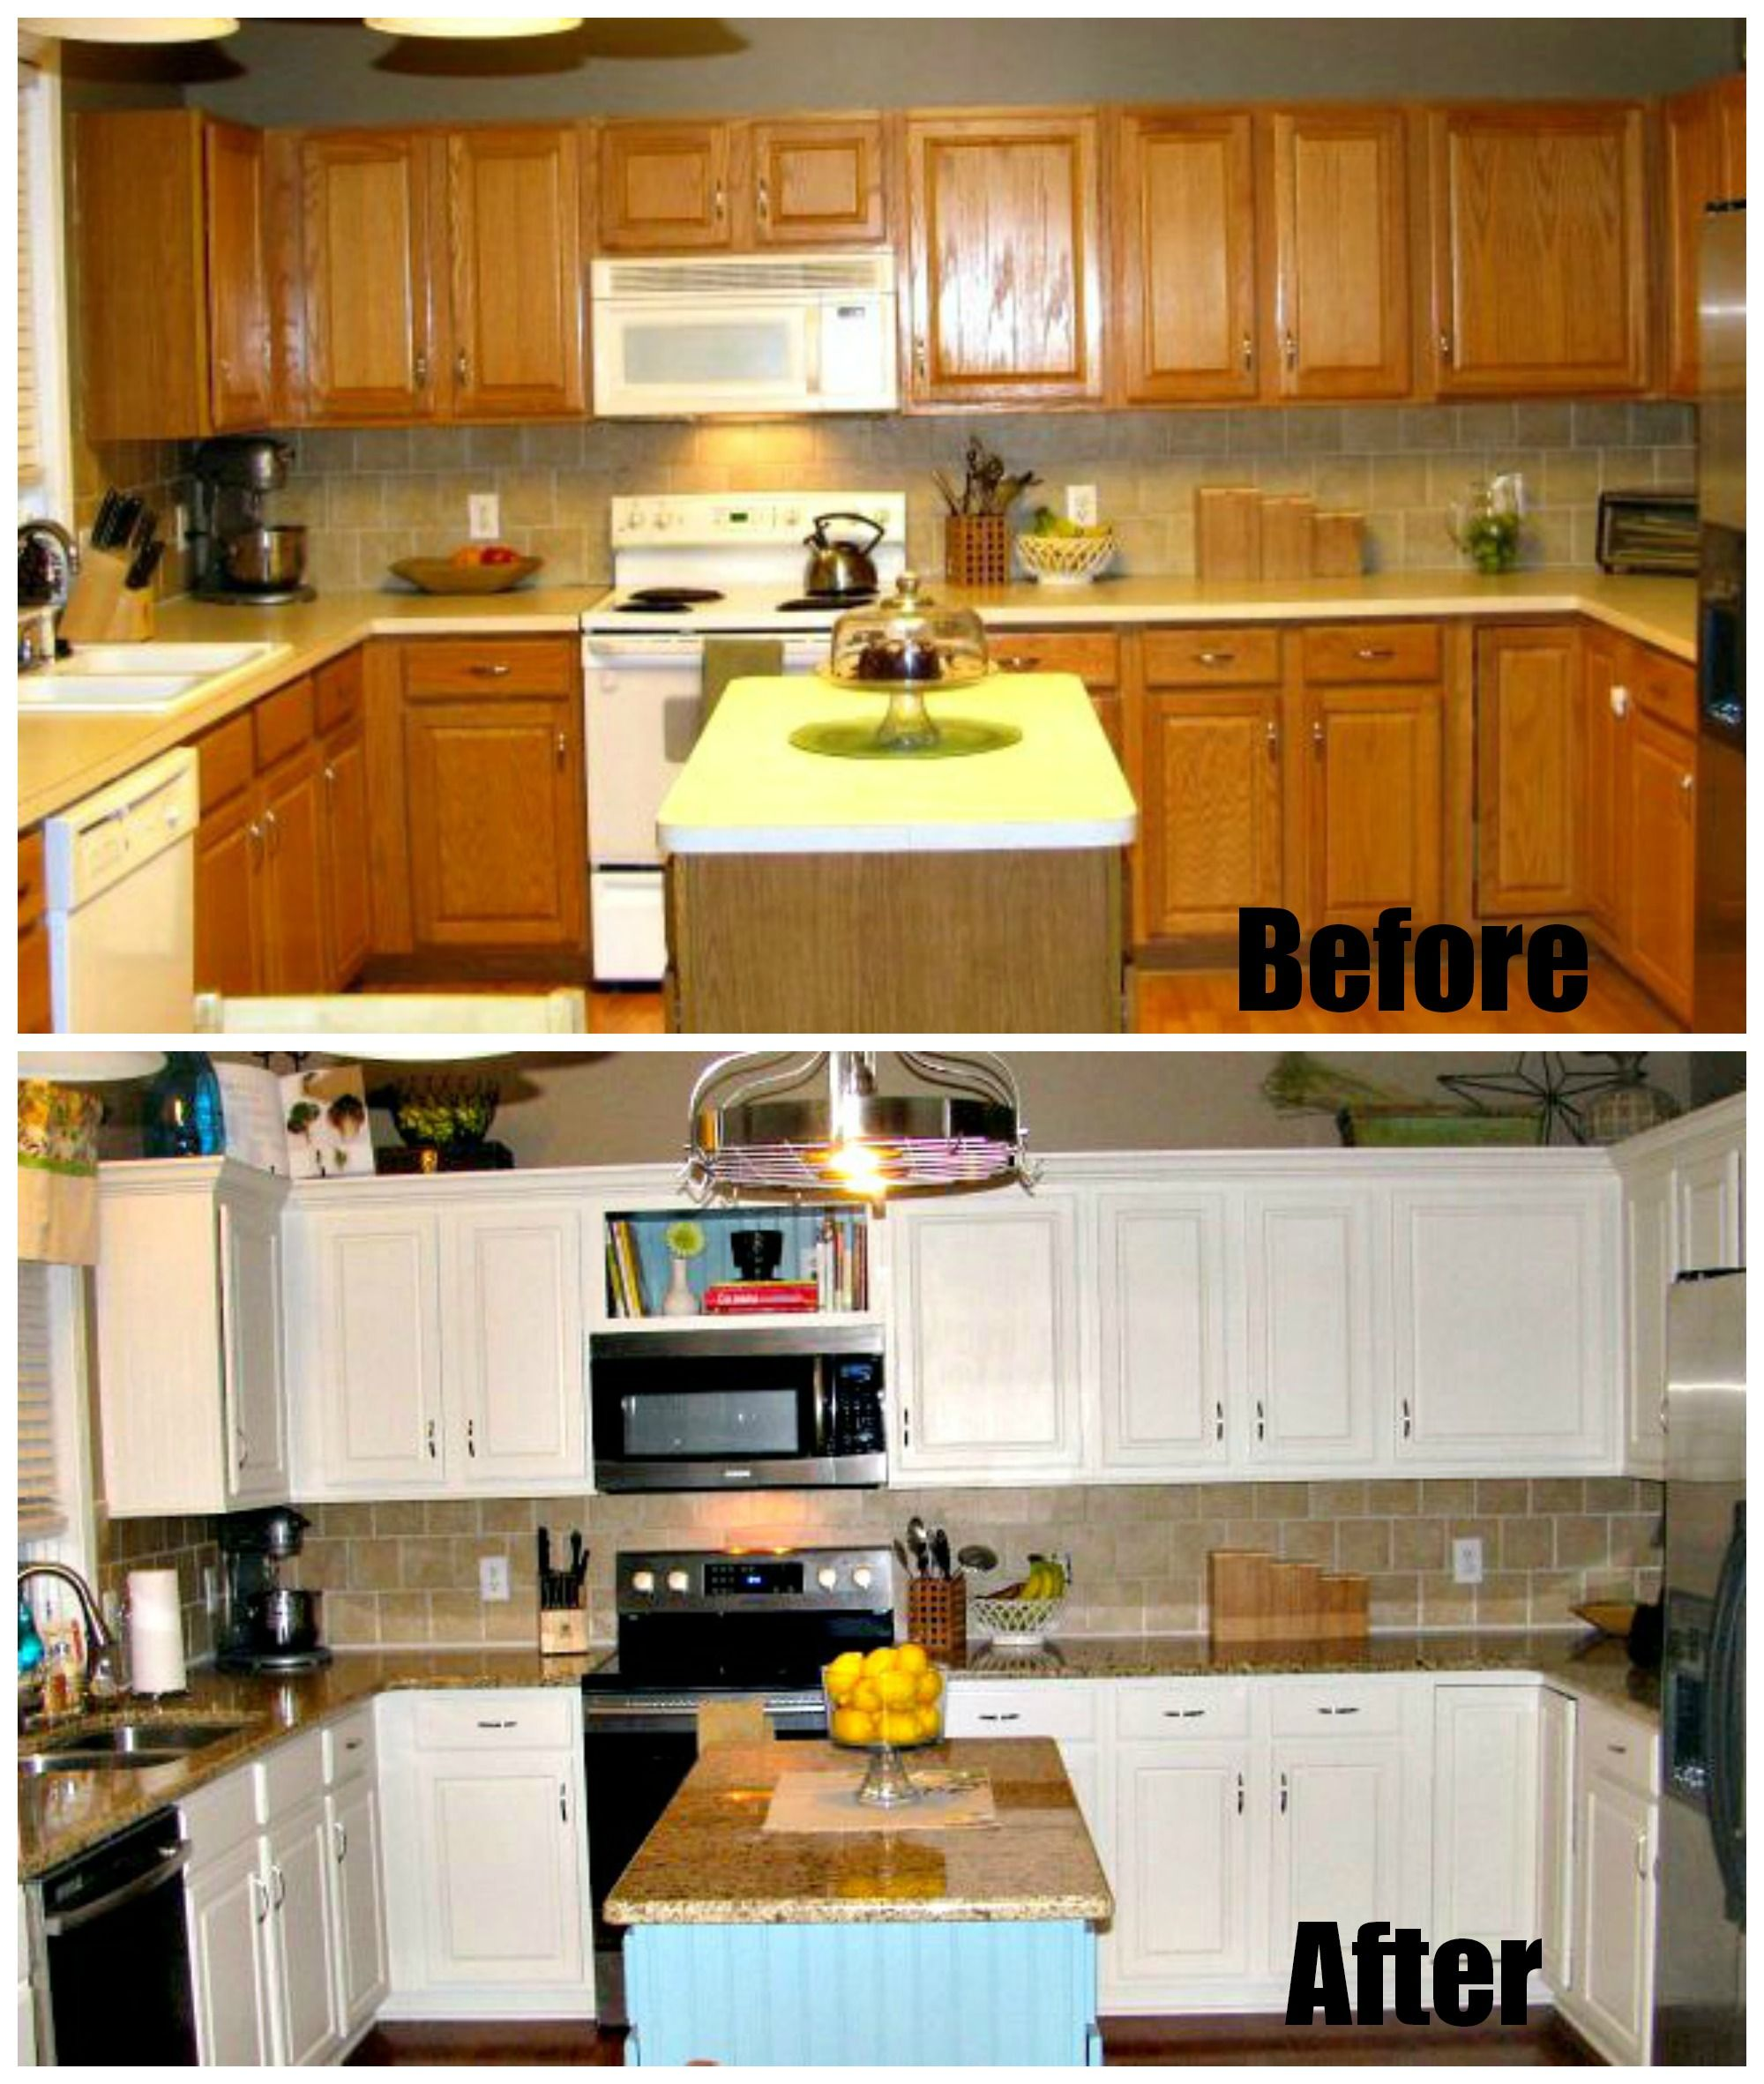 Diy low budget kitchen remodel for the home pinterest for Remodel kitchen on a budget